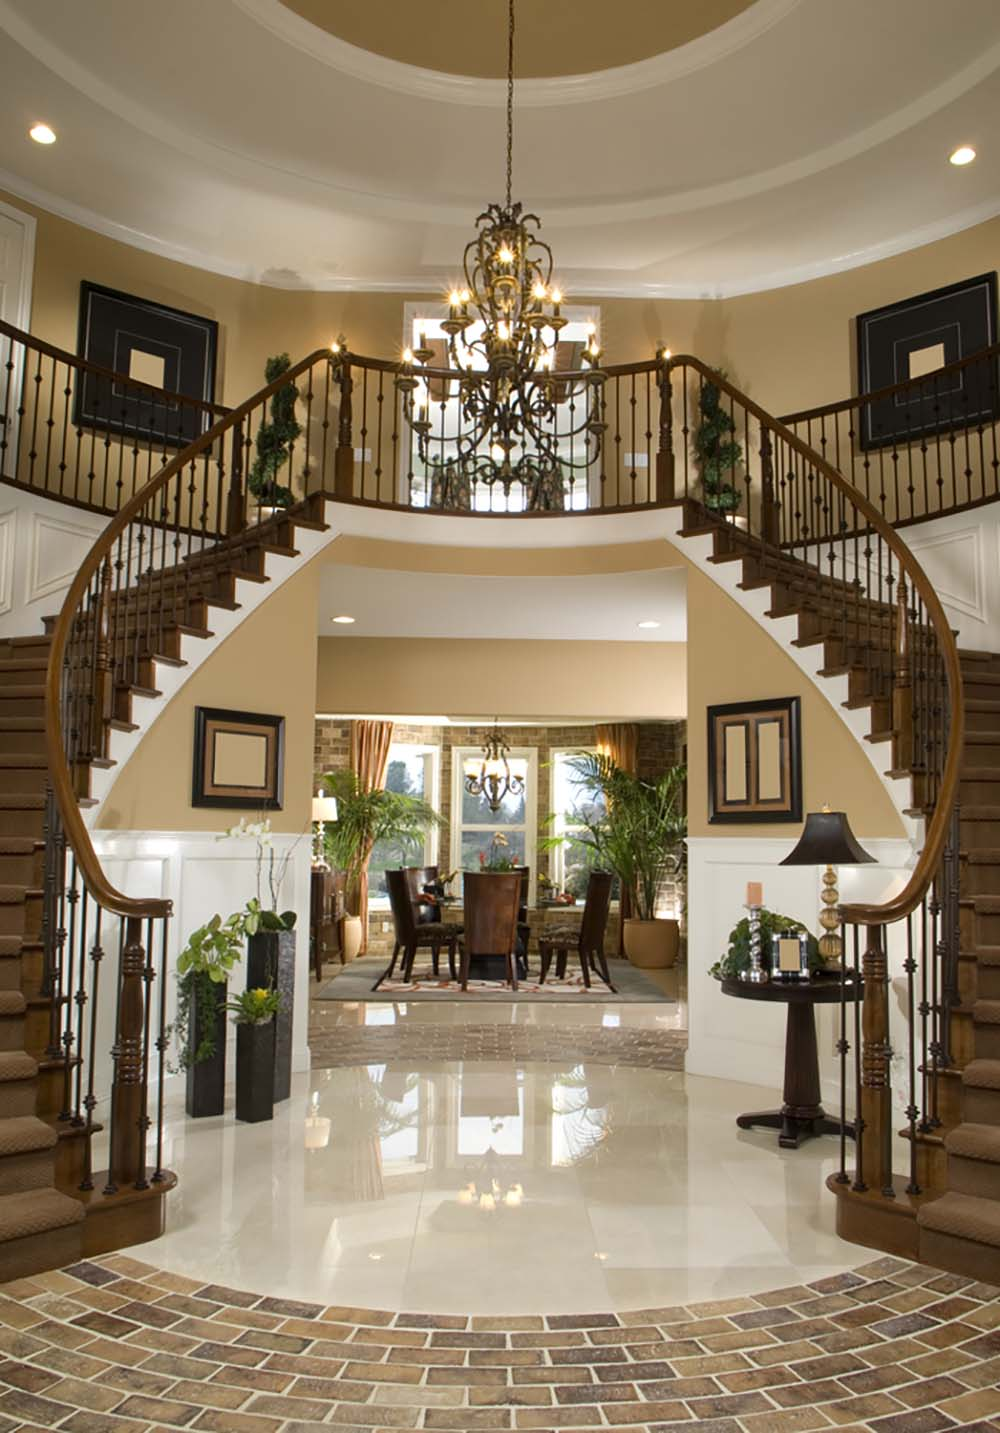 House With A Foyer : Dream foyers